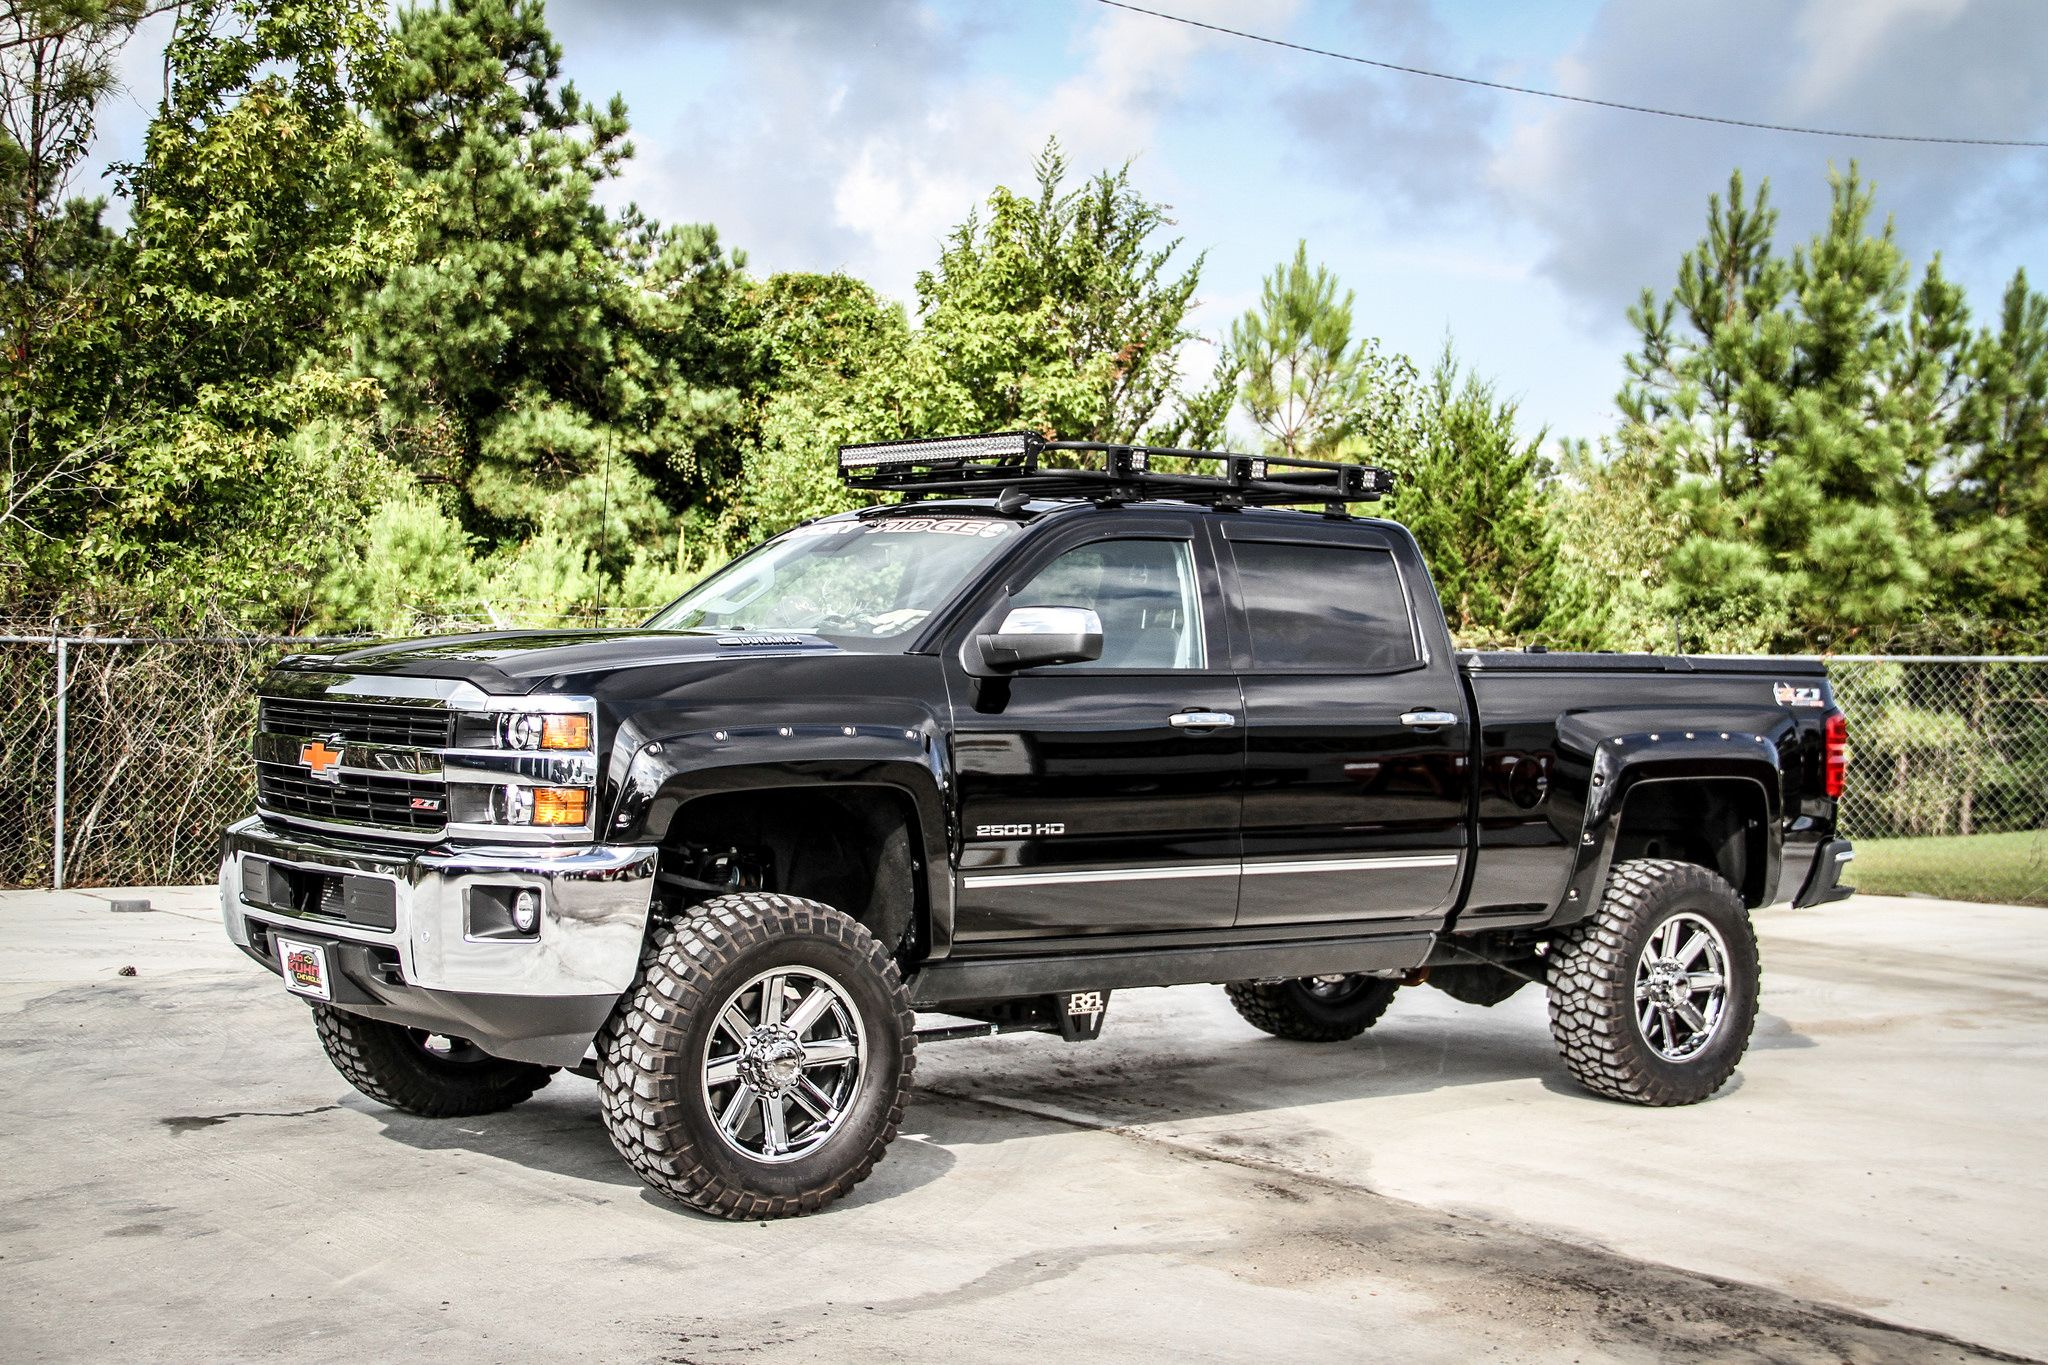 Lifted Chevy Silverado Lifted Chevy Truck Covers Lifted Silverado